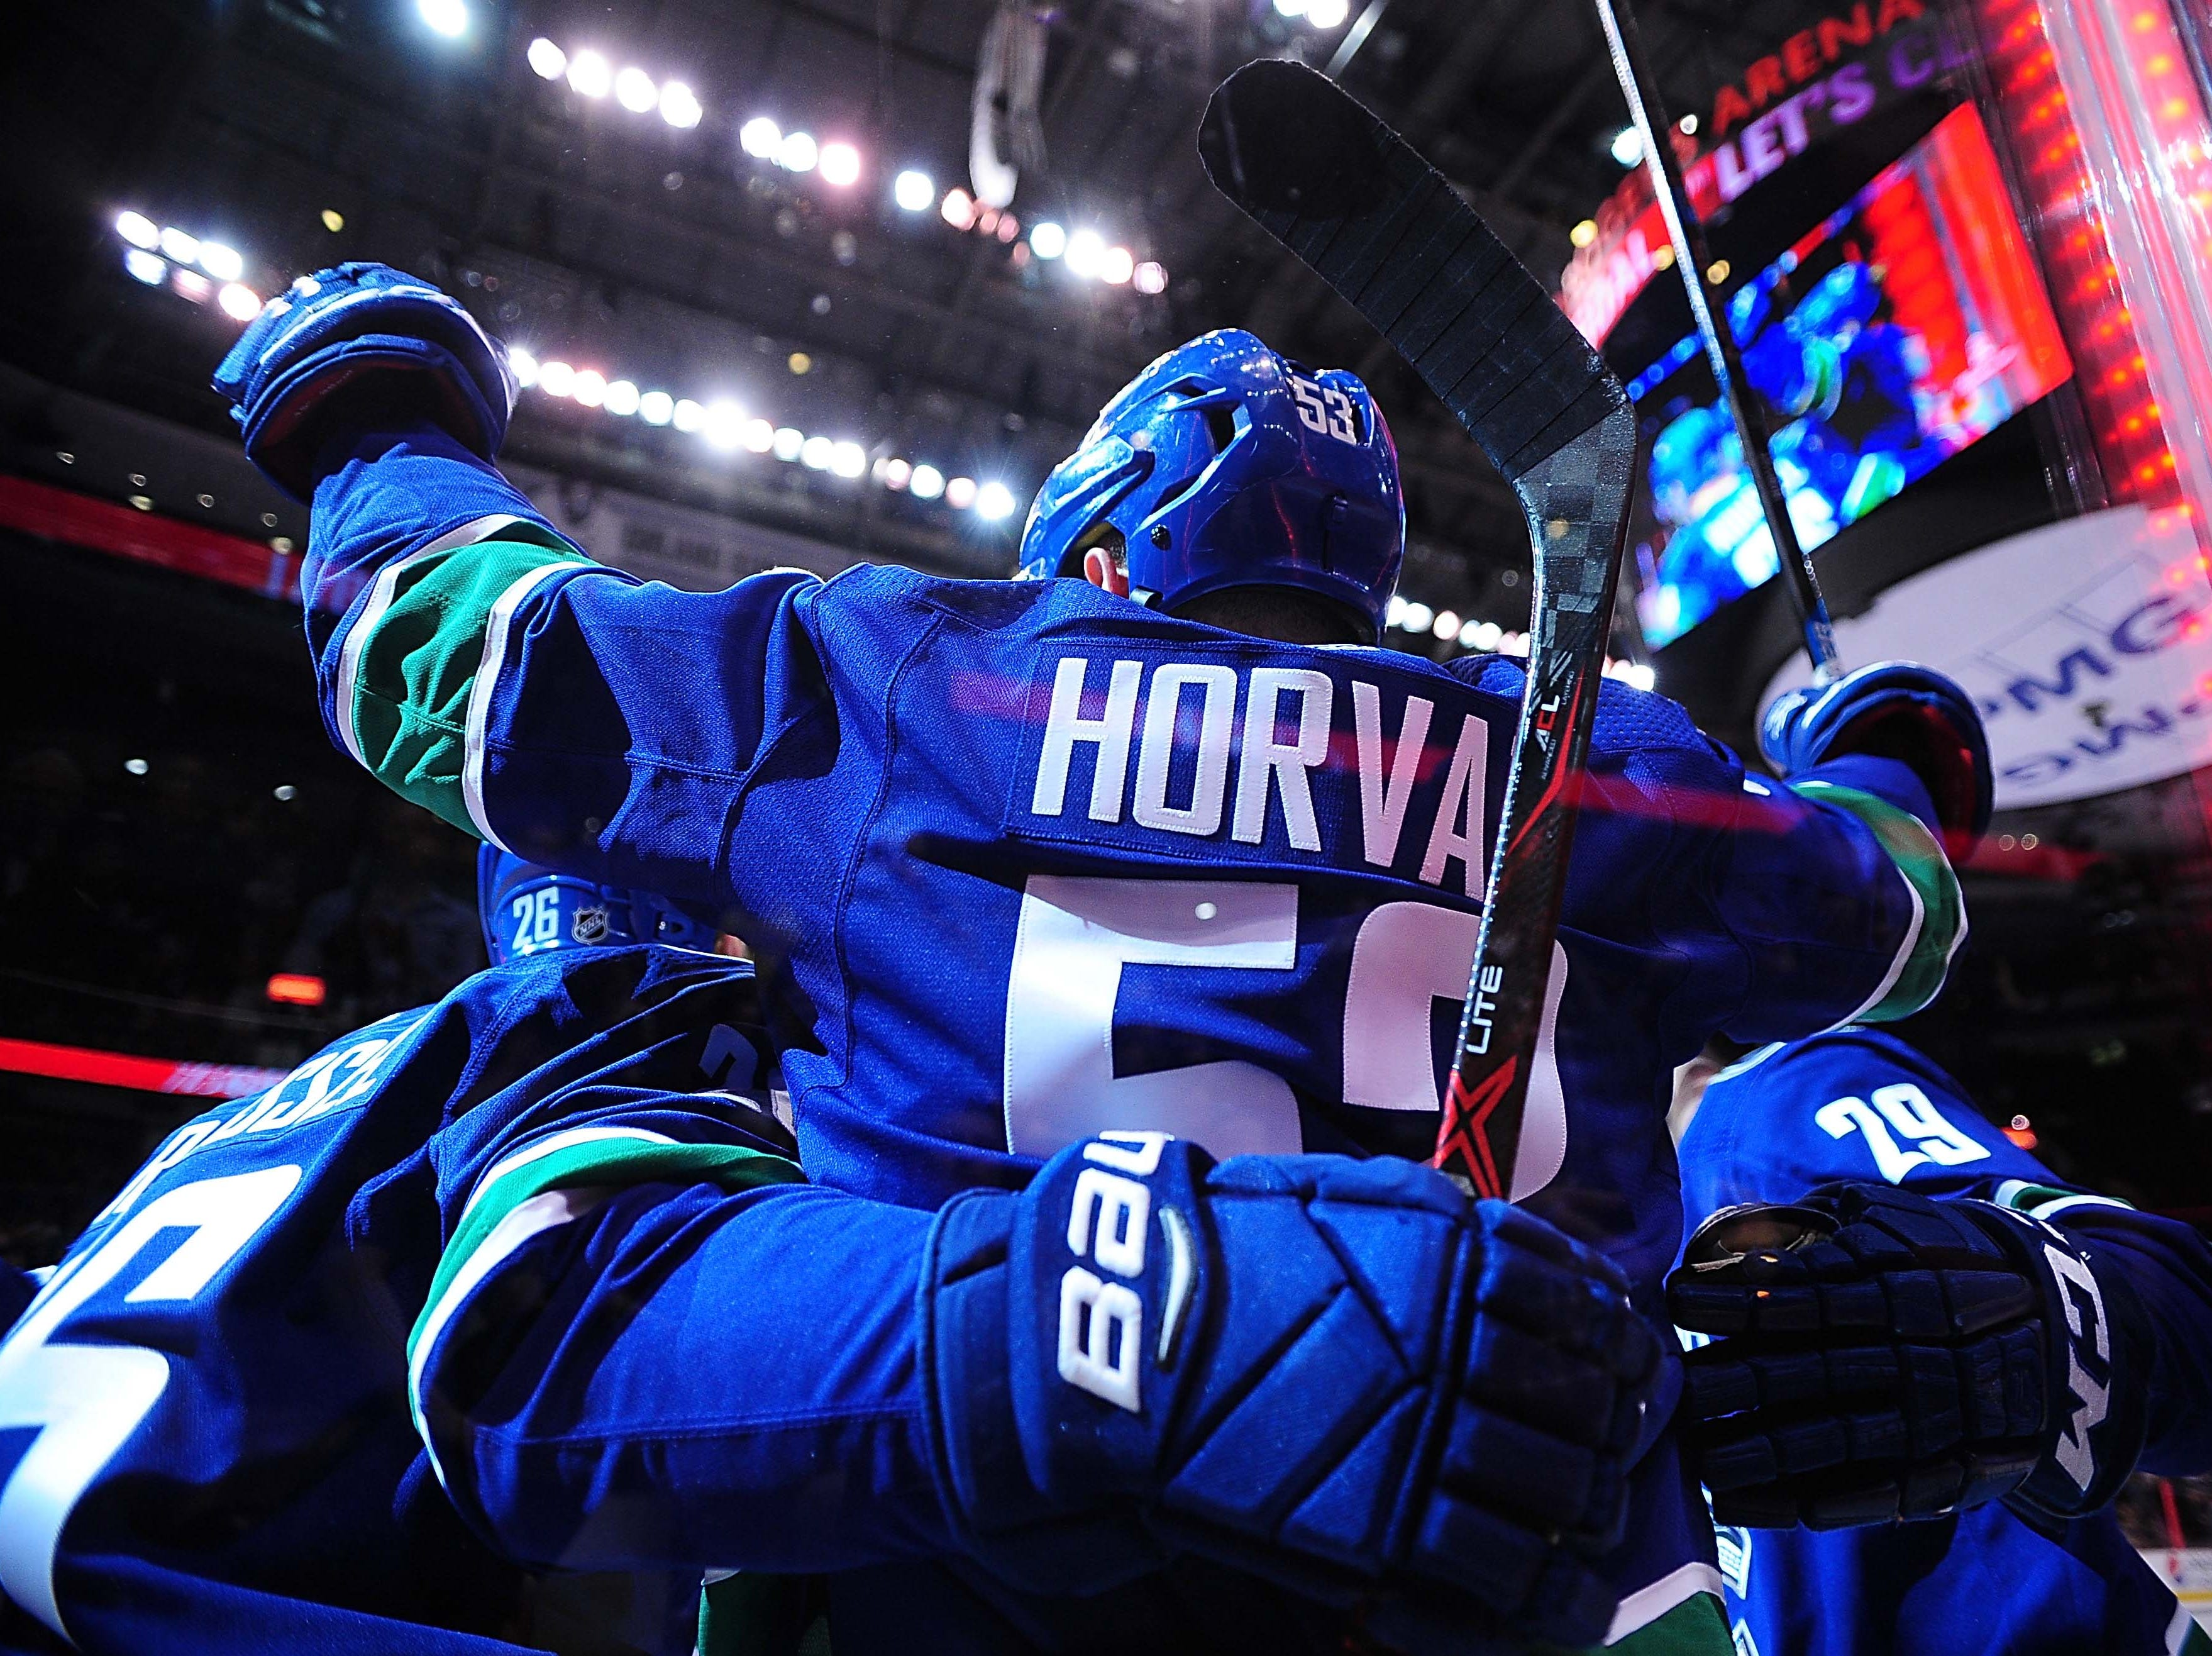 Feb 21, 2019; Vancouver, British Columbia, CAN; Vancouver Canucks forward Bo Horvat (53) celebrates his goal against Arizona Coyotes goaltender Darcy Kuemper (35) (not pictured) during the first period at Rogers Arena. Mandatory Credit: Anne-Marie Sorvin-USA TODAY Sports